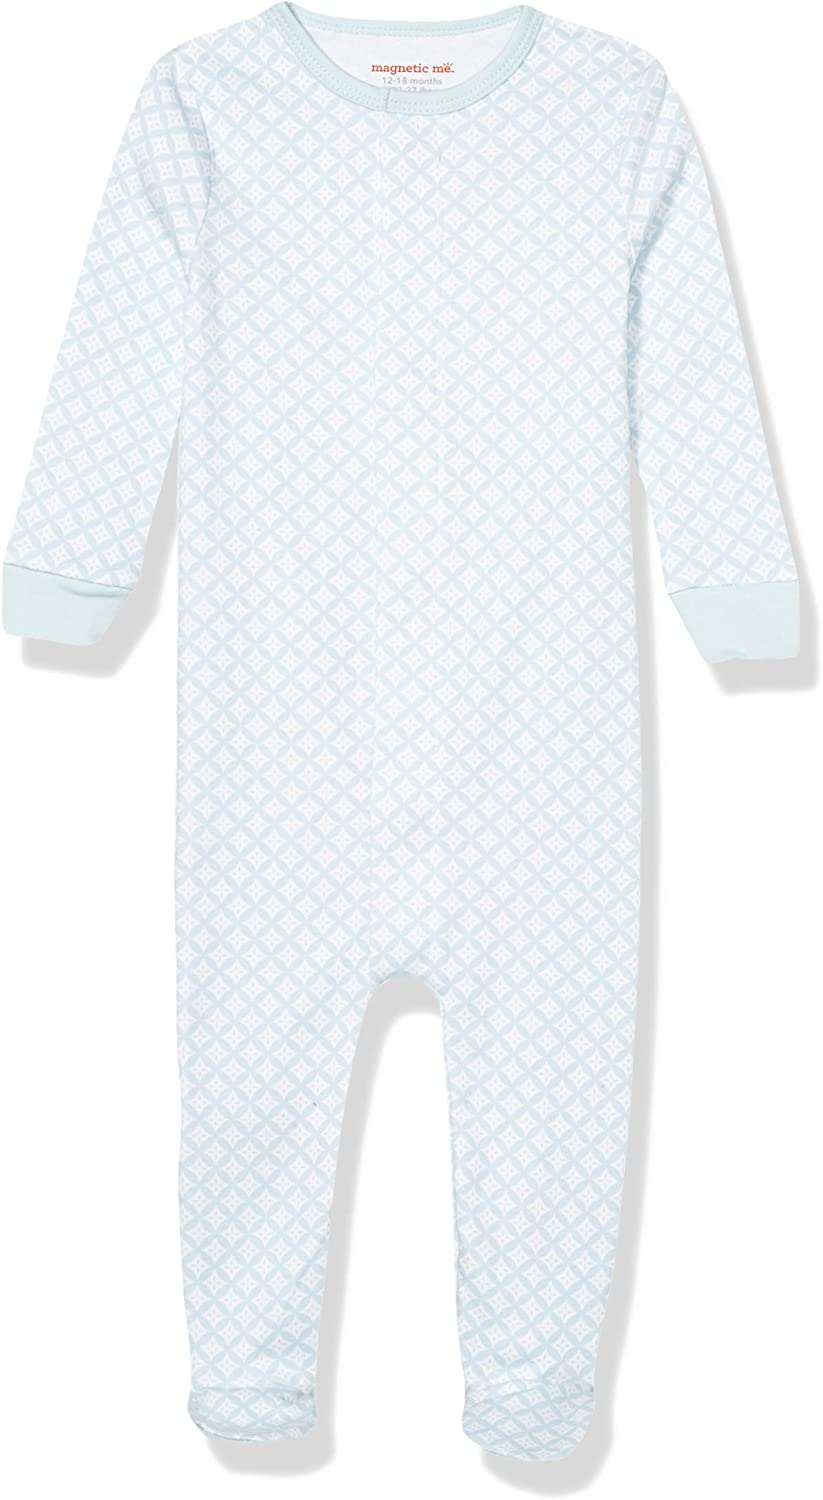 Magnificent Baby Boys and Unisex Magnetic Fastener Cotton Footie Pajamas: Clothing